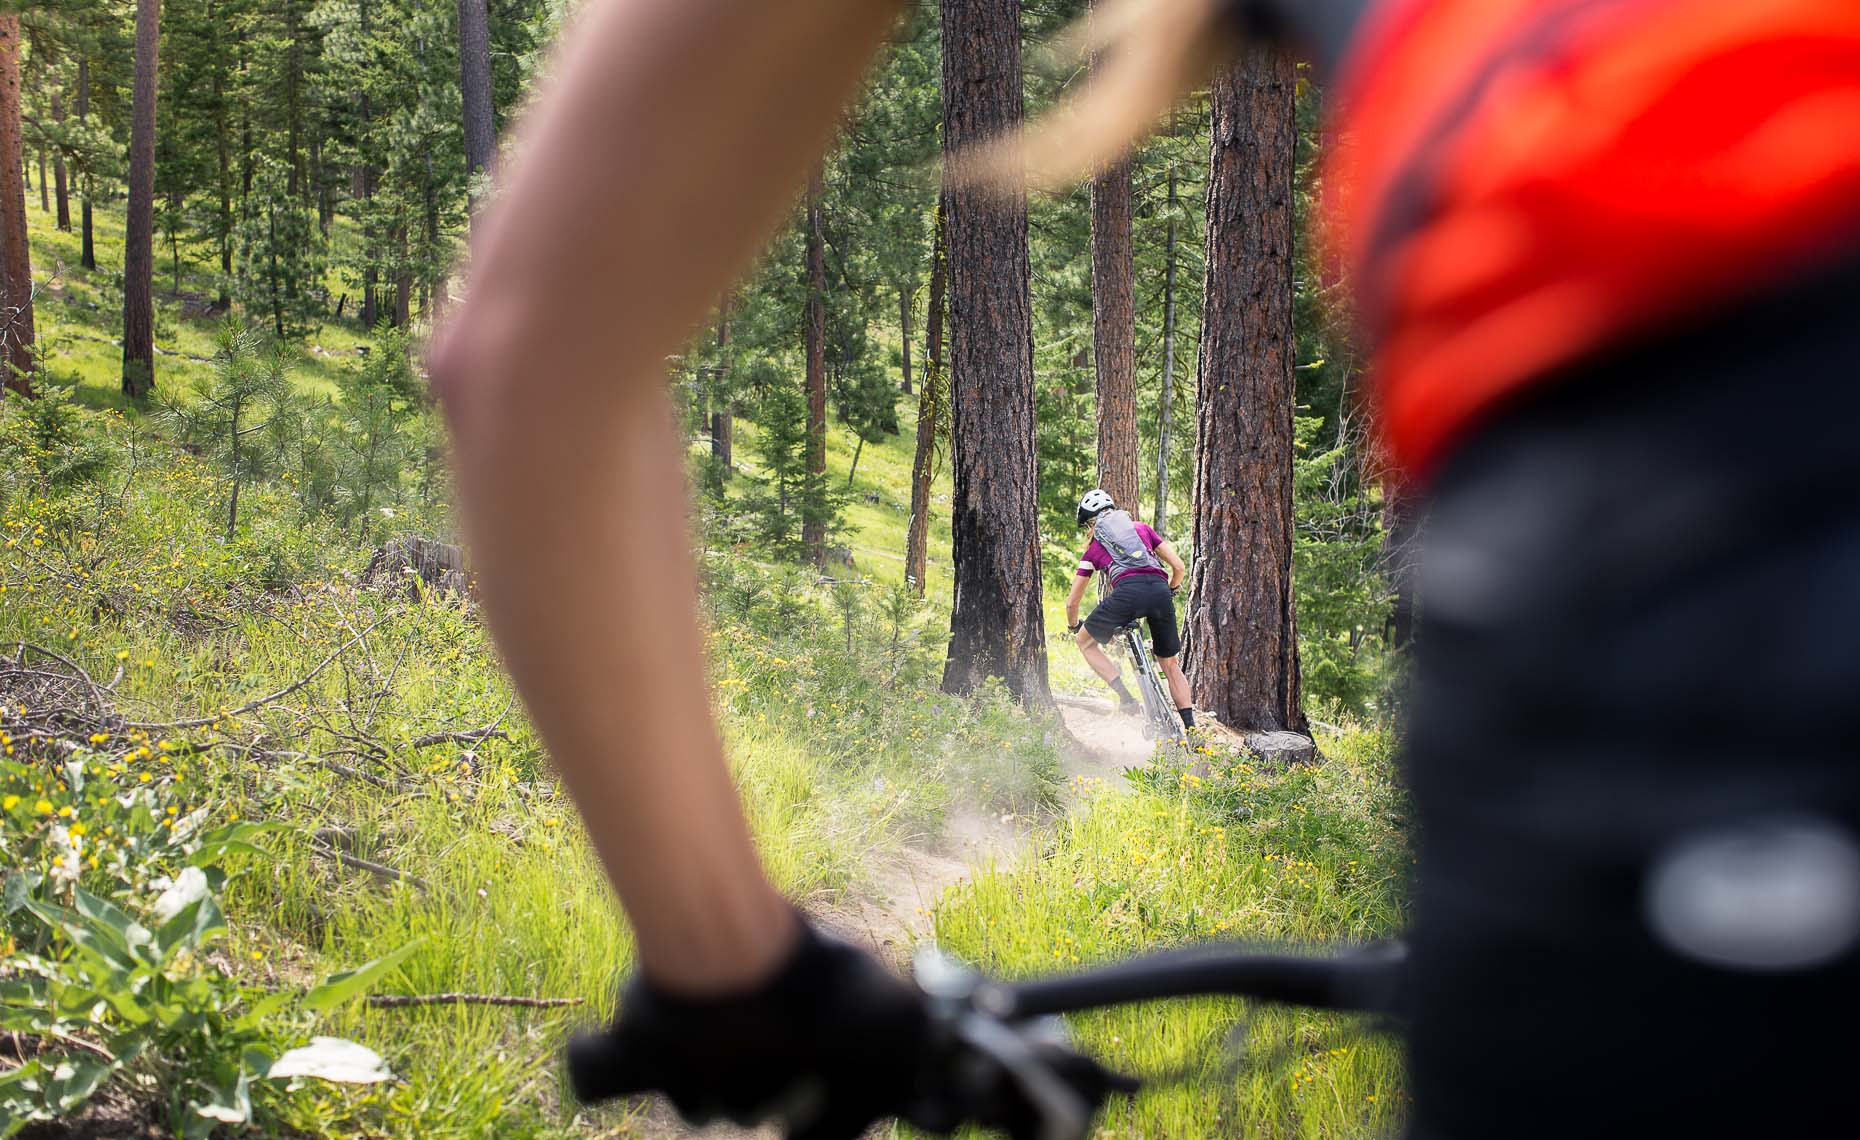 Vancouver action sports photographer shoots mountain biking